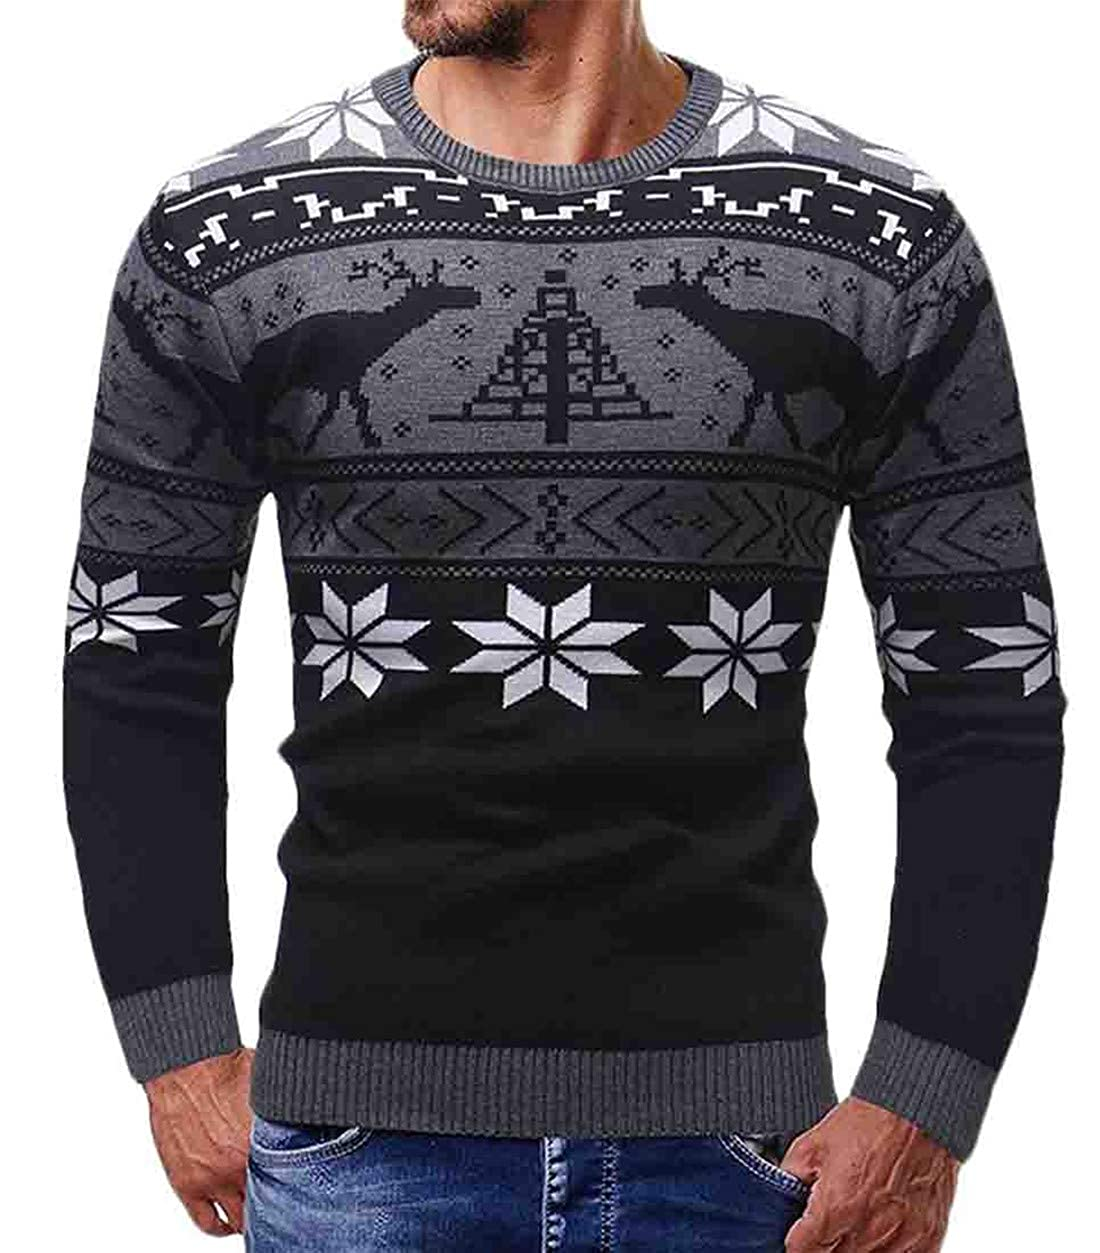 SELX Men Thick Pullover Jumper Knit Slim Fit Christmas Printed Crew Neck Sweater